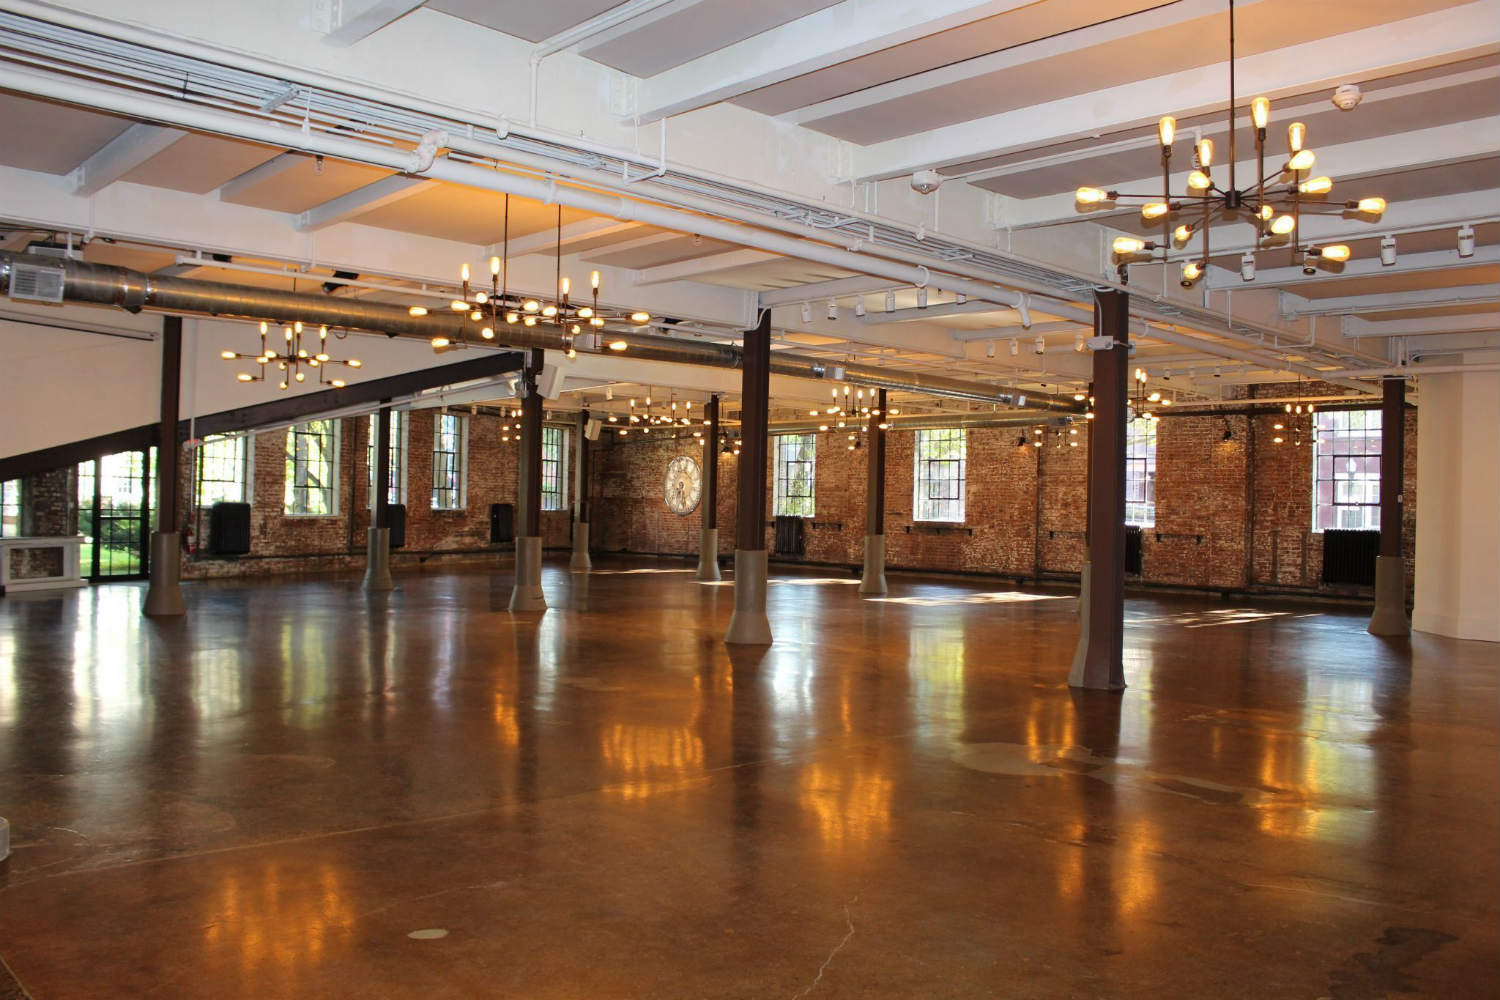 Senate Garage, located in Kingston, NY, is the city newest and most sophisticated industrial event hall. WSDG design the whole acoustic treatment for the space. Featured image